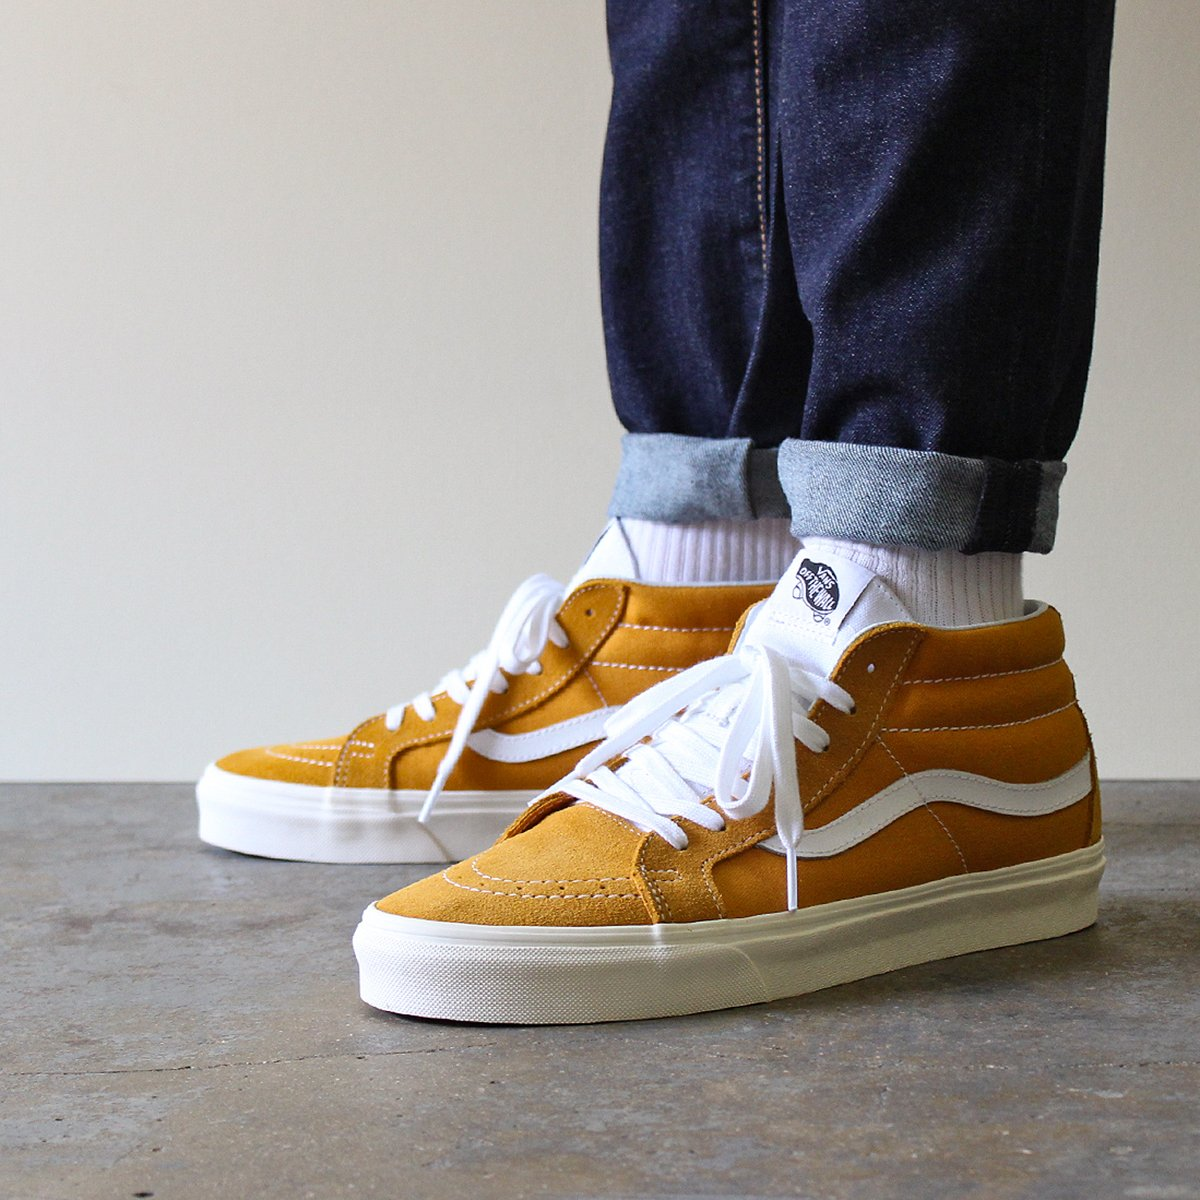 6284583380 Made with canvas uppers and suede overlays on the toe box and heel panel  with the classic Vans stripe contrasting down the sides...  https   goo.gl zGHNRP ...